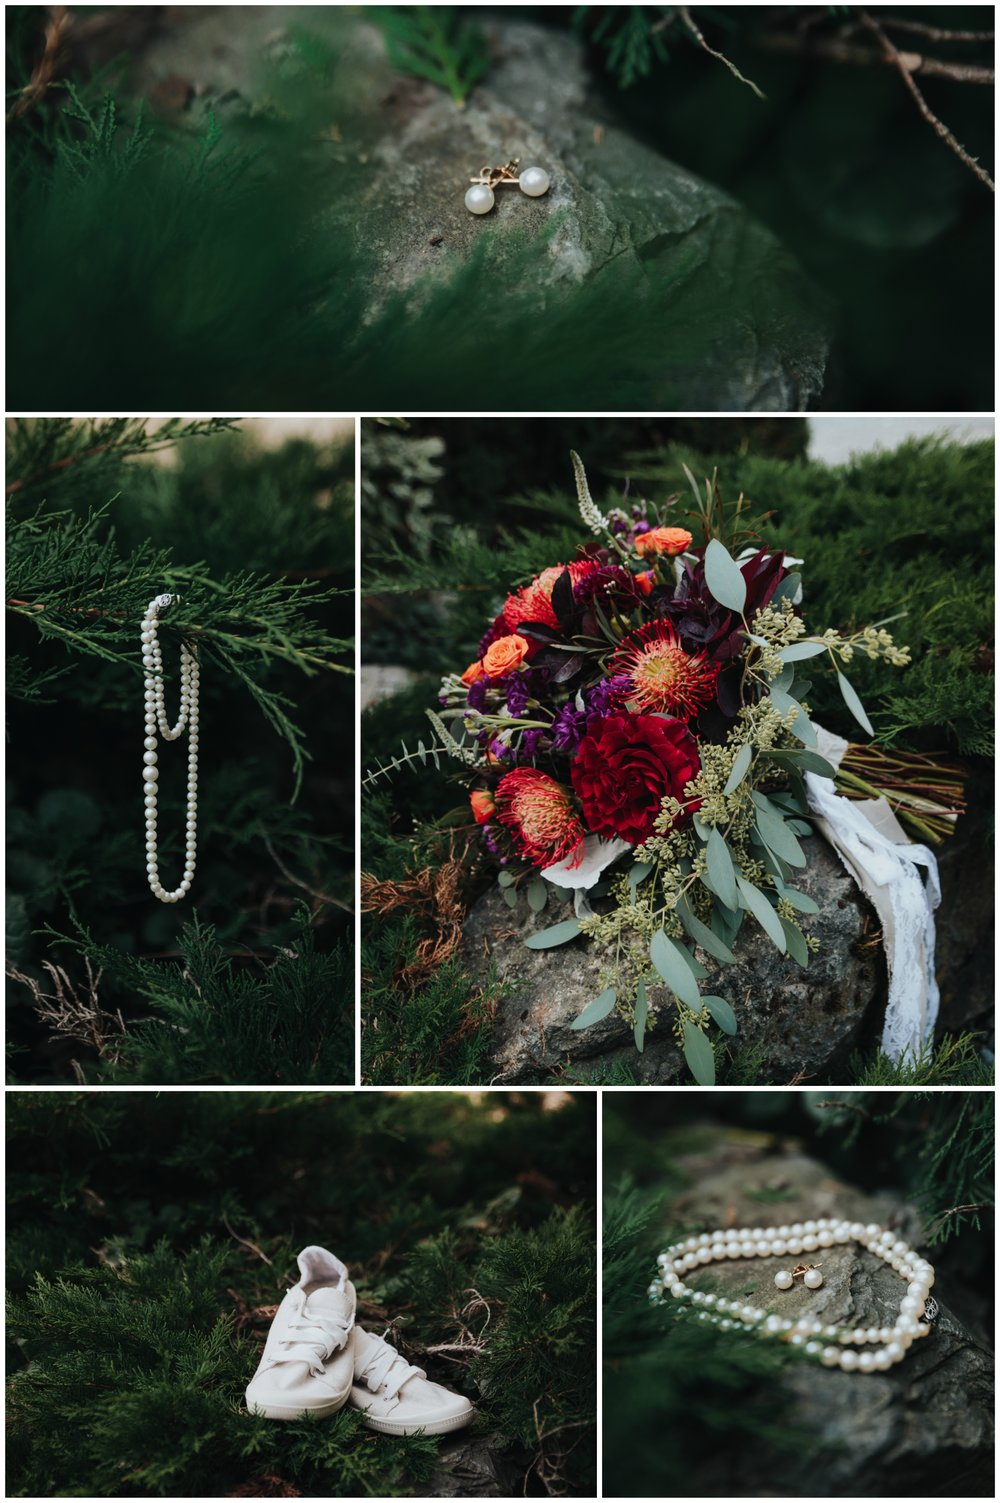 Fraser River Lodge Fall Wedding, Rustic, Red, Purple, Pine, Green.jpg